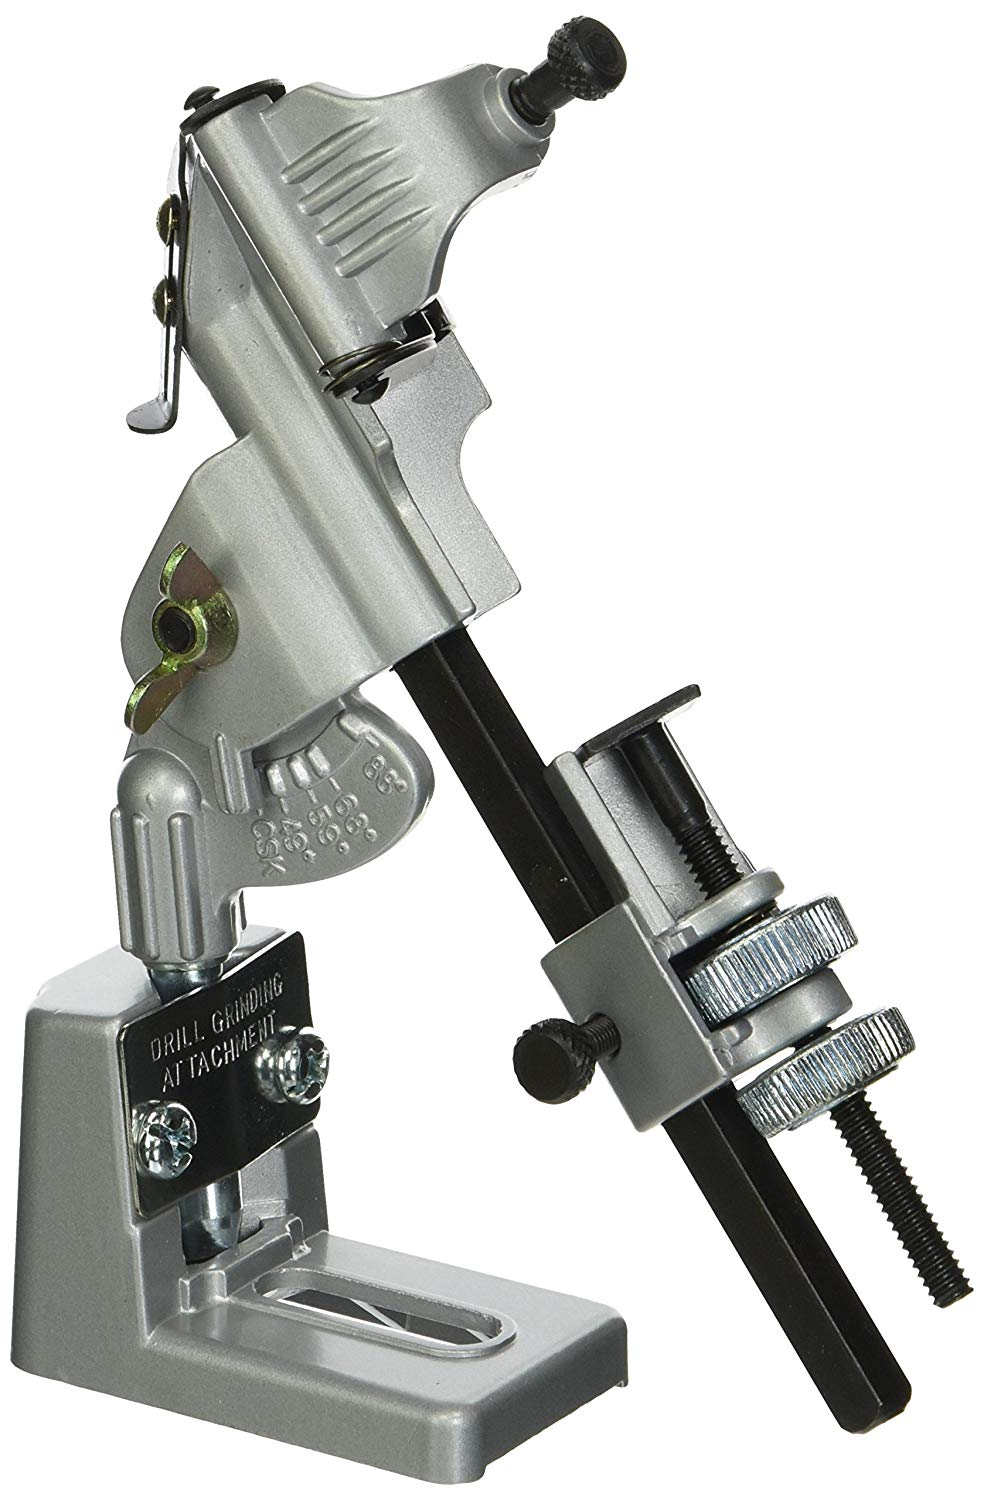 General Tools 825 Drill Grinding Attachment - Drill Sharpener